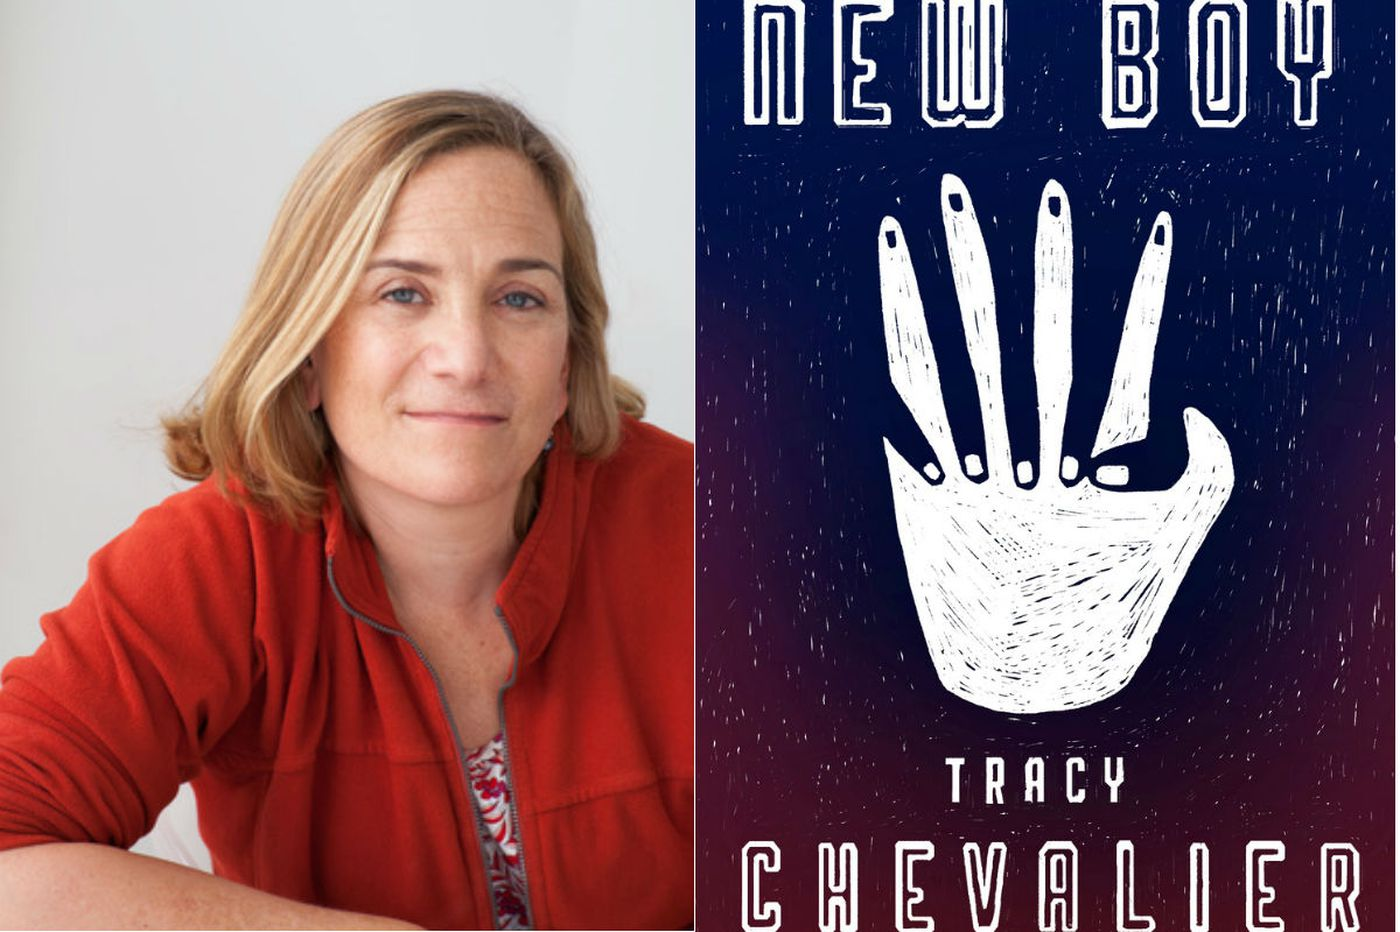 Tracy Chevalier's 'New Boy': Shakespeare on the playground